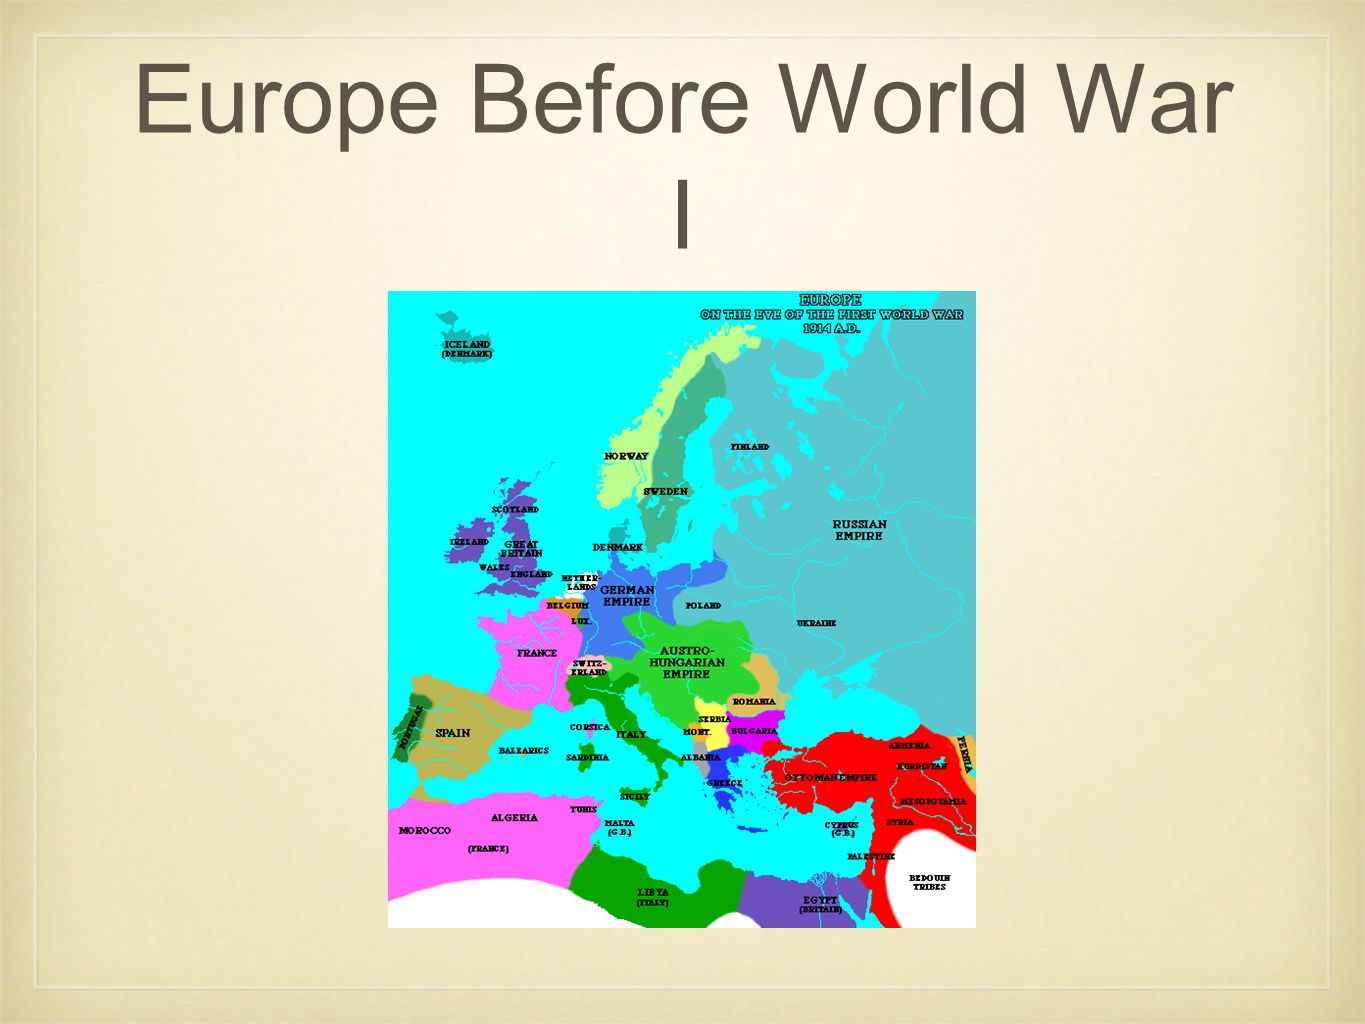 Europe Before World War I